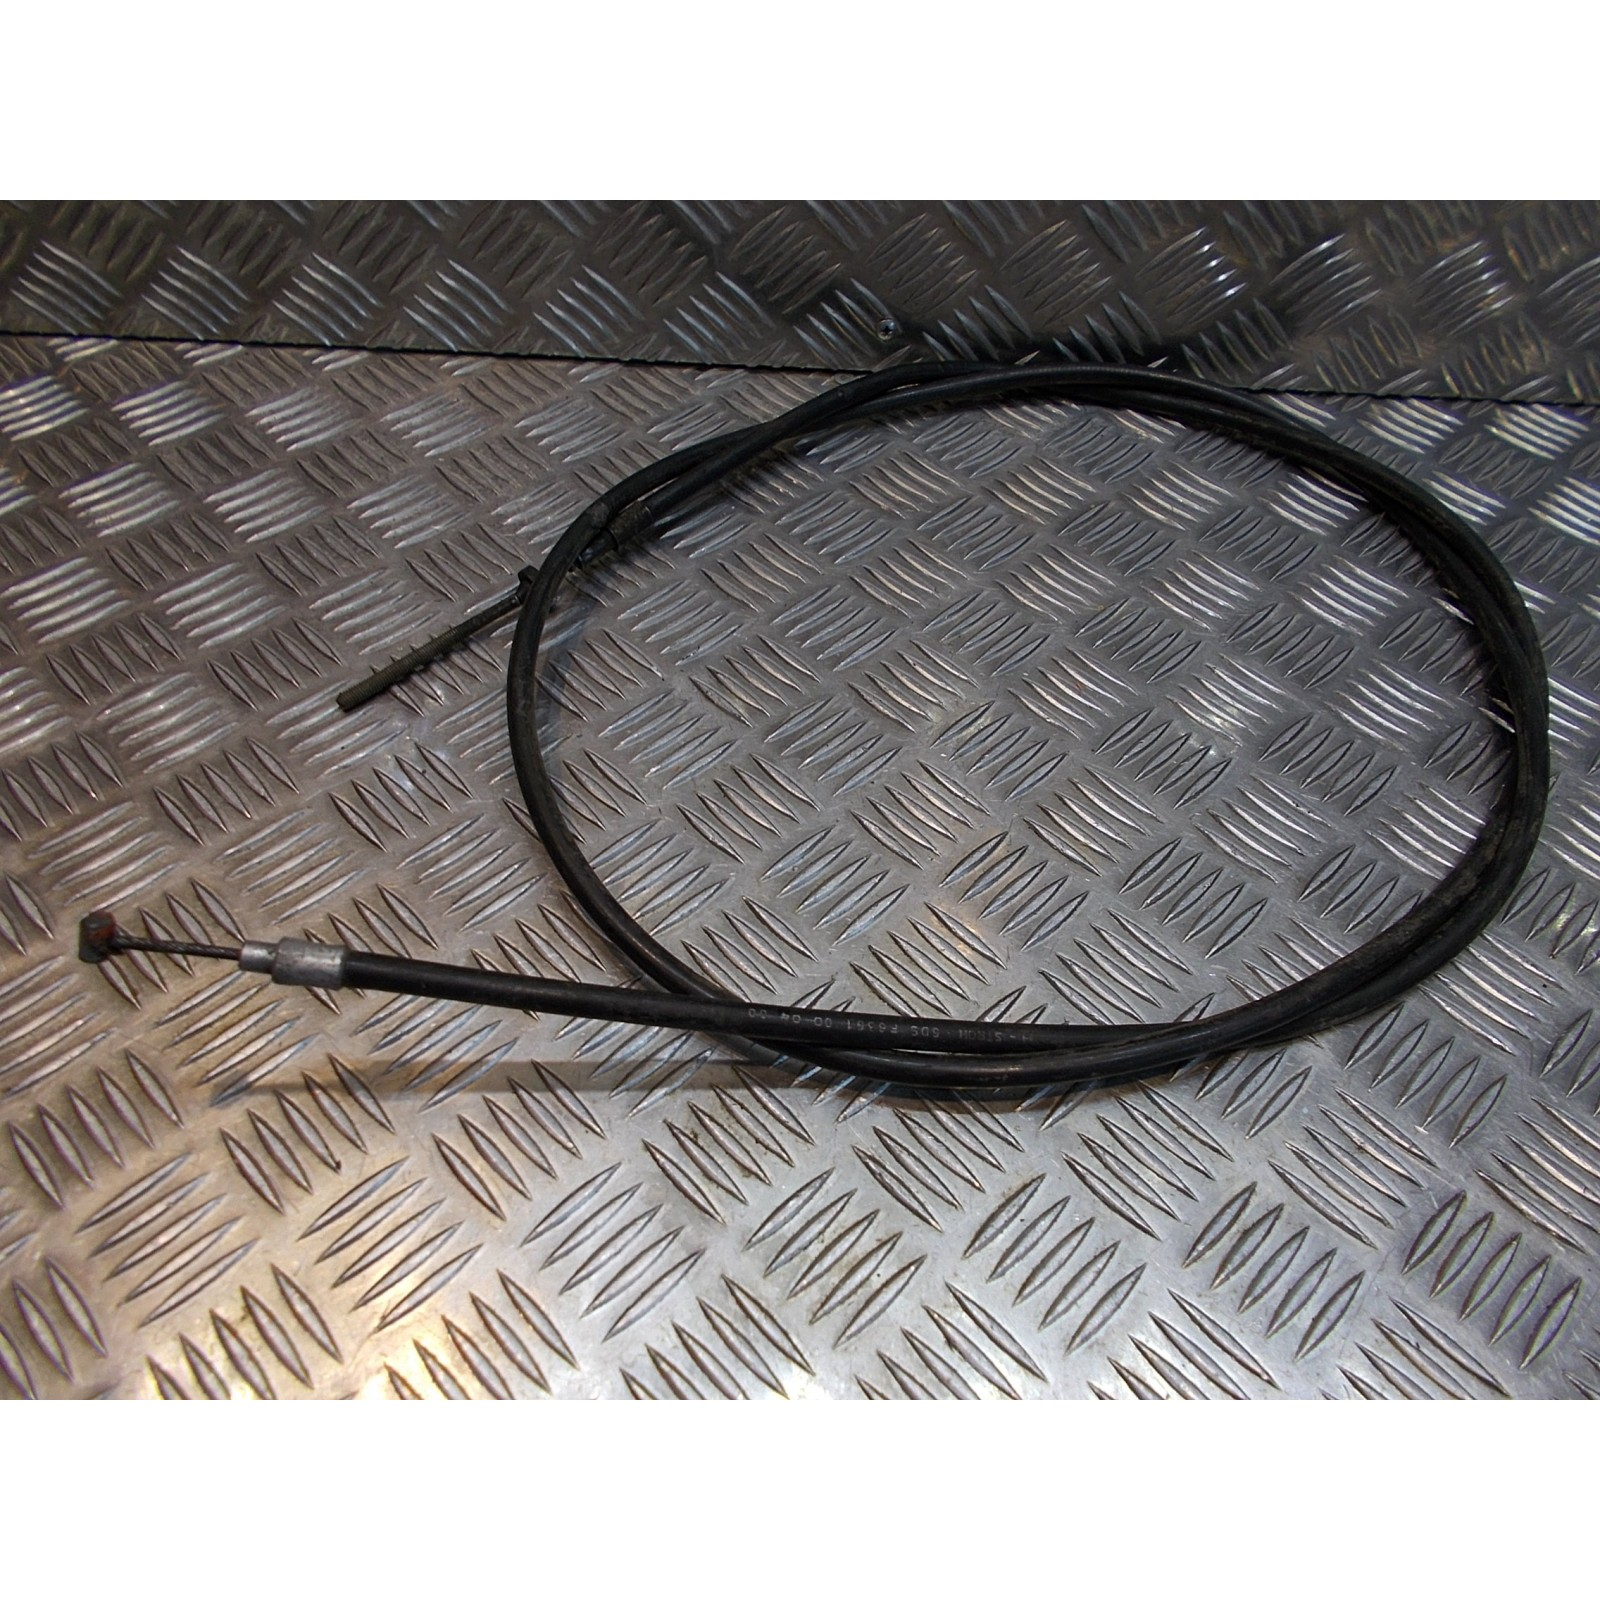 cable frein arriere scooter yamaha yp 125 majesty mbk skyliner